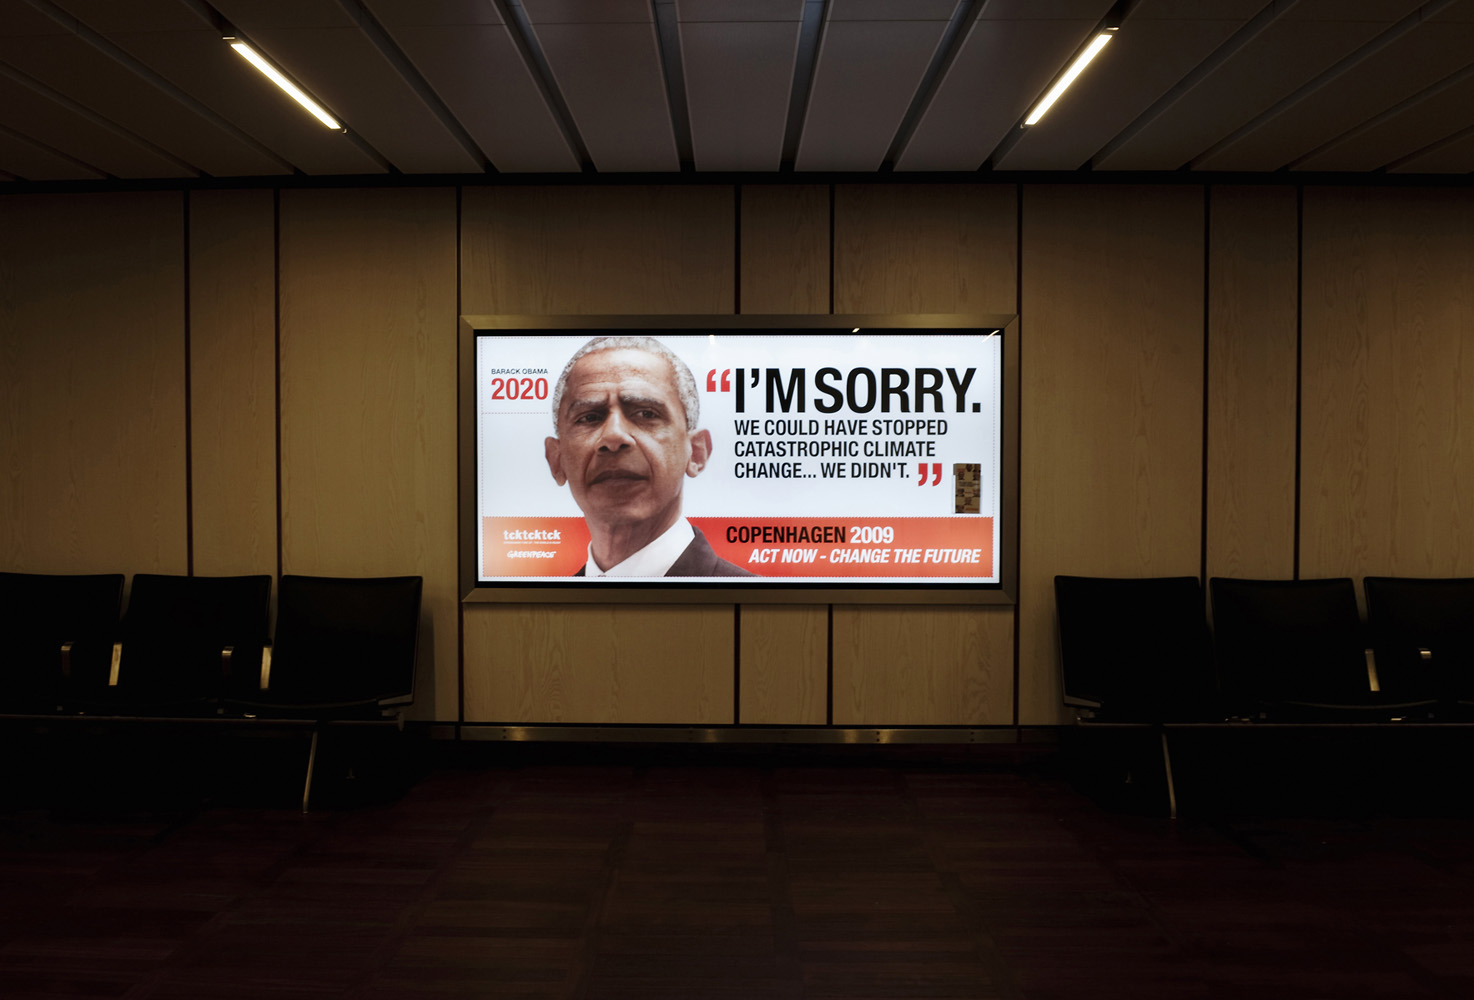 Copenhagen, Denmark.Adverts with heads of state placed in Copenhagen International Airport by the global coalition, tcktcktck and Greenpeace, calling on world leaders to secure a fair, ambitious and binding deal at the Copenhagen Climate Summit (COP15). The ads  feature a doctored image of a current world leader - so that they look about ten years older - apologising from the future for not taking action when they had the opportunity.